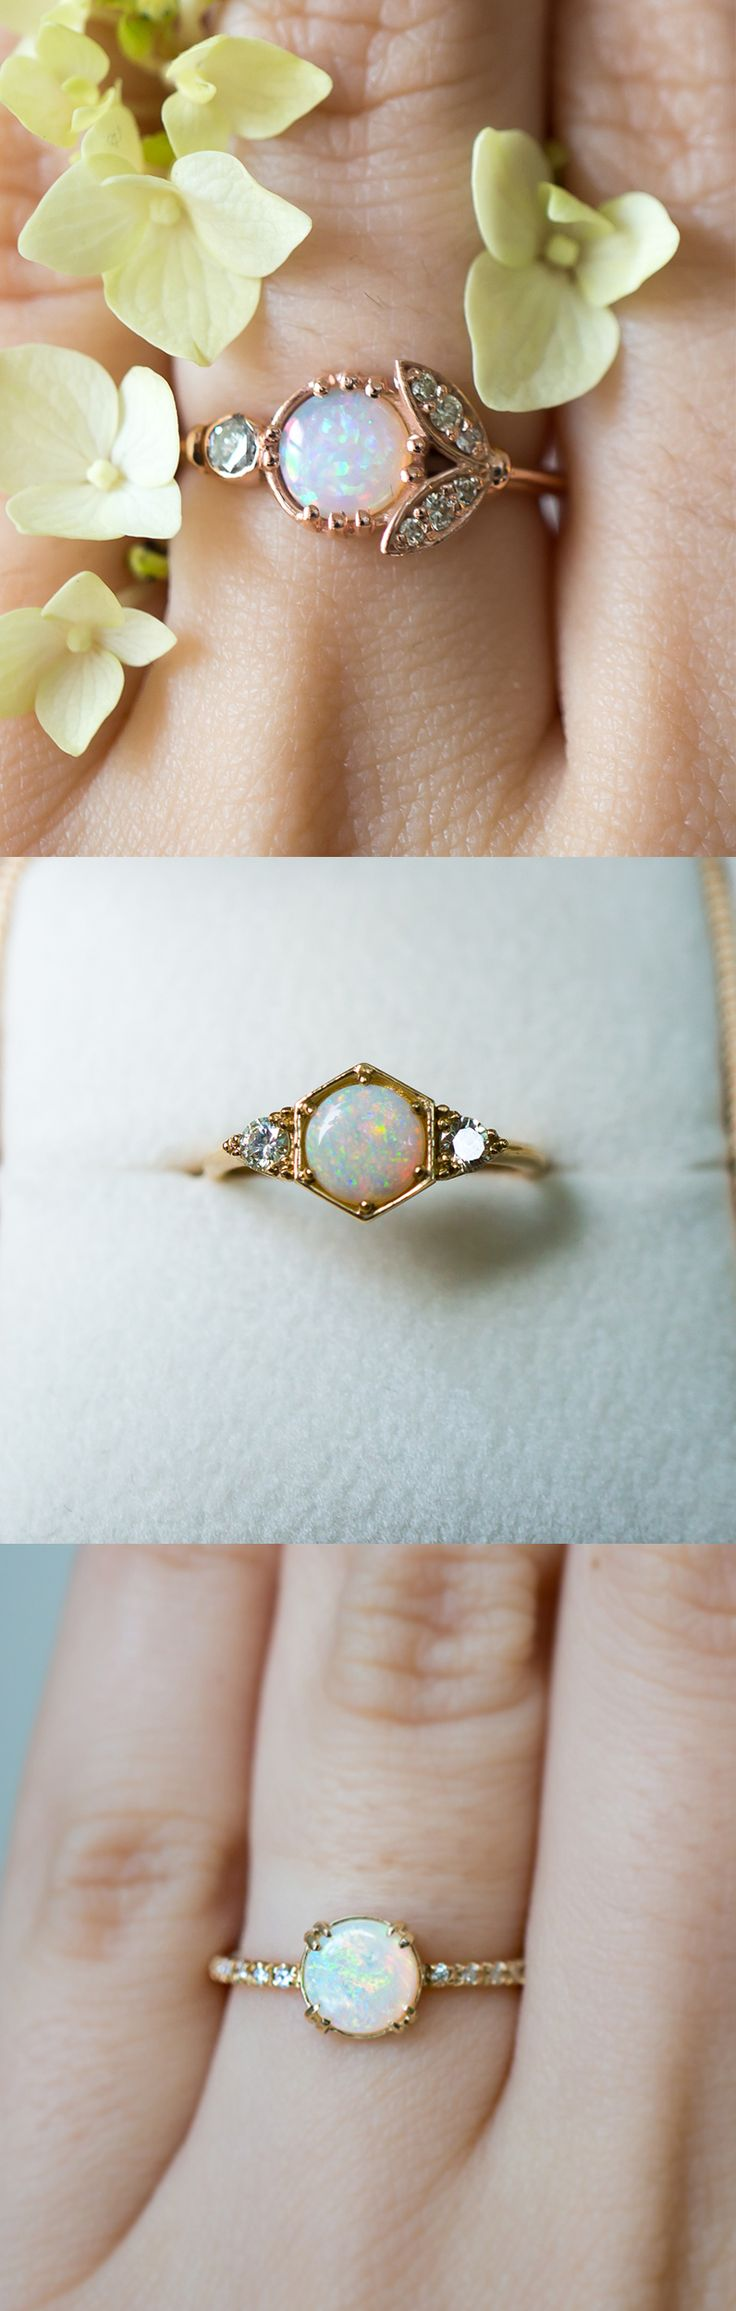 unique vintage rings vintage wedding ring Unique vintage inspired Opal engagement rings by S Kind Co